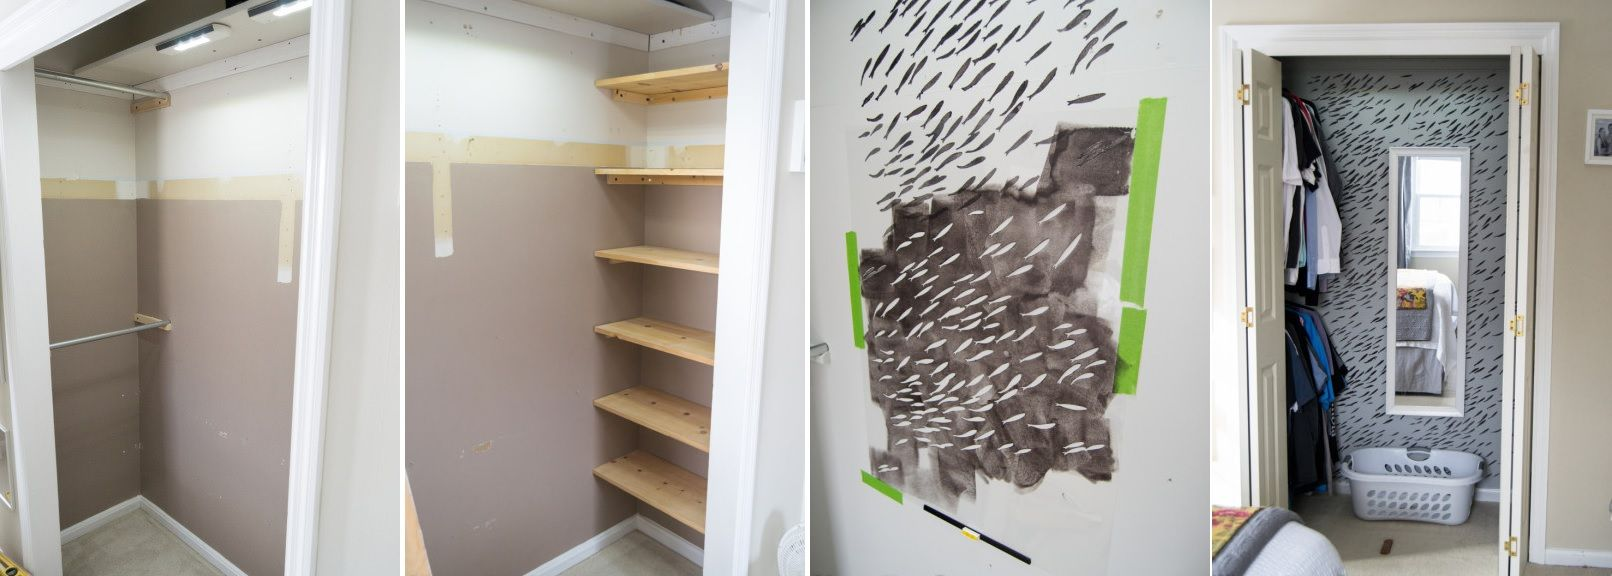 Closet makeover with a stencil paint and reorganization